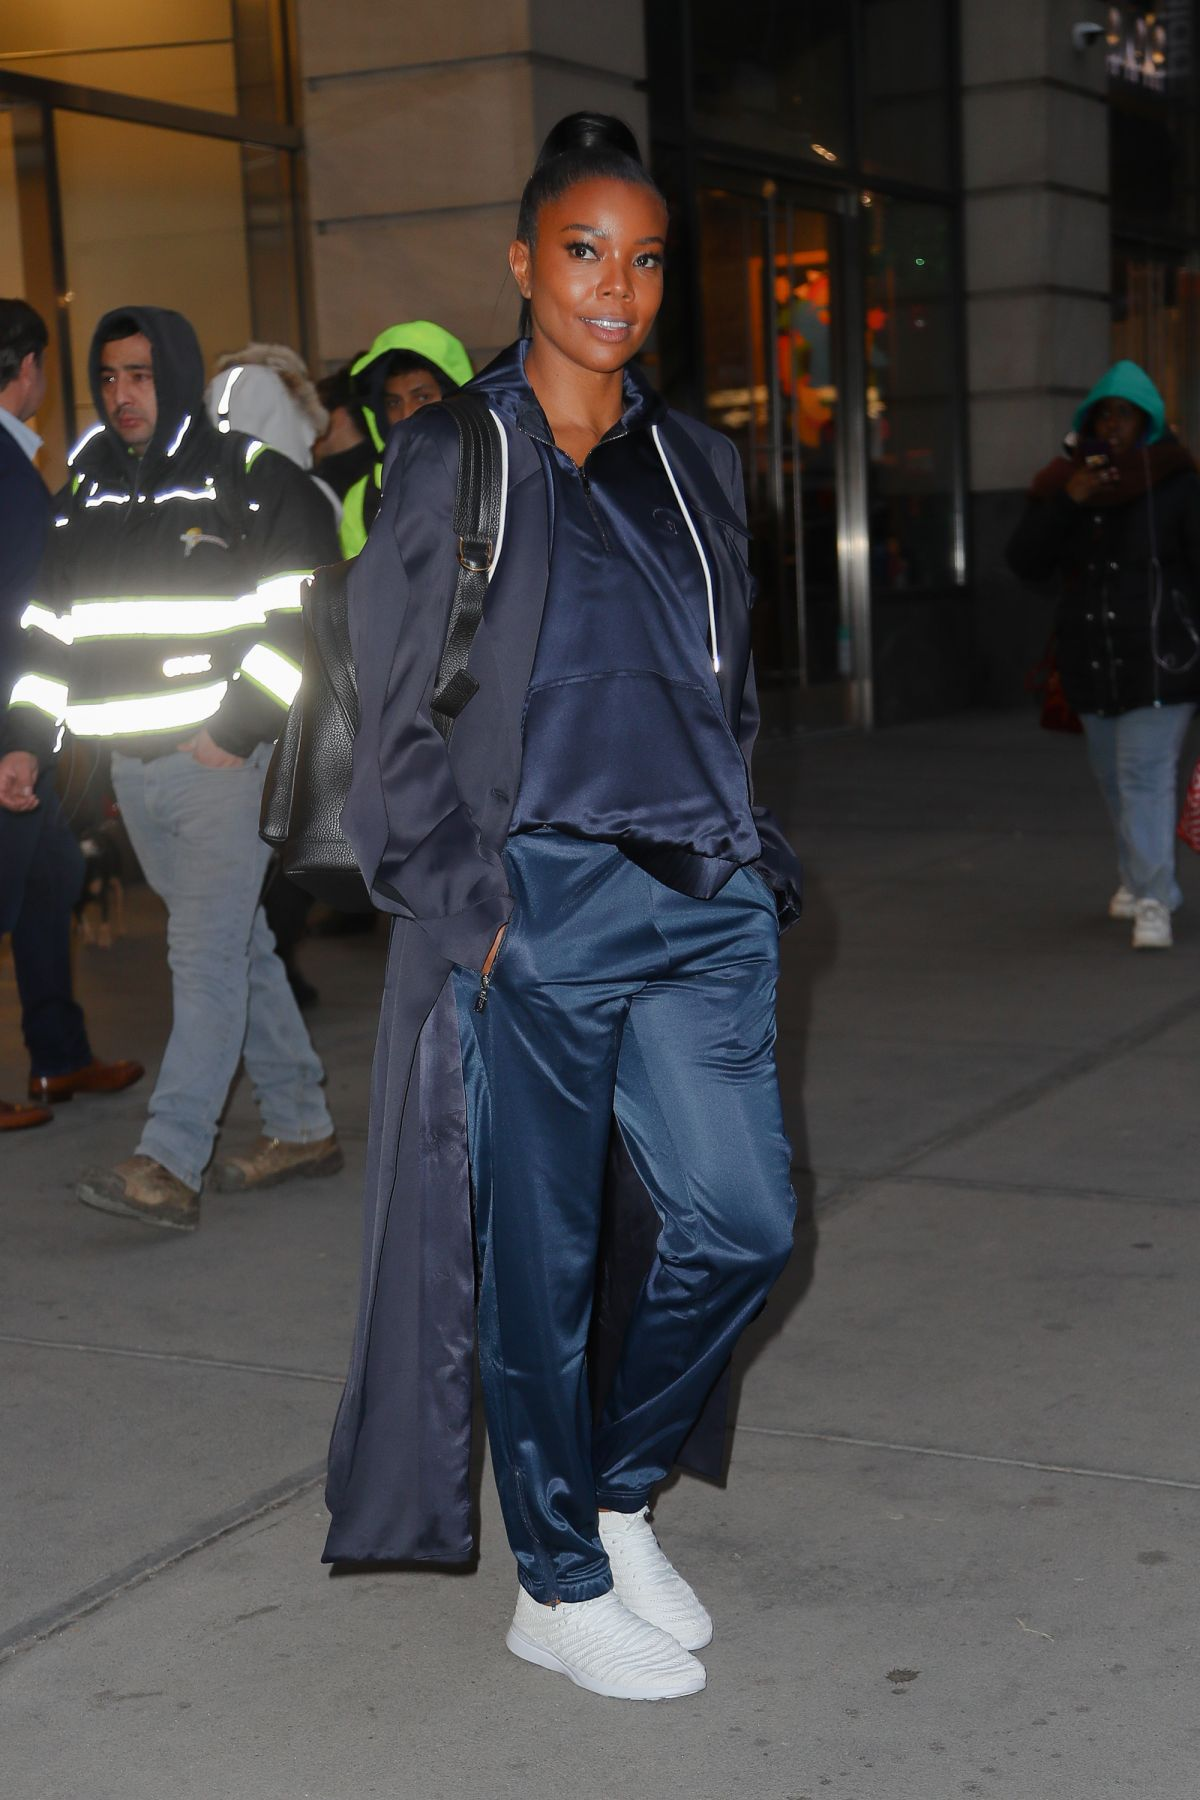 Gabrielle Union Spotted All Smiling While Leaving The New